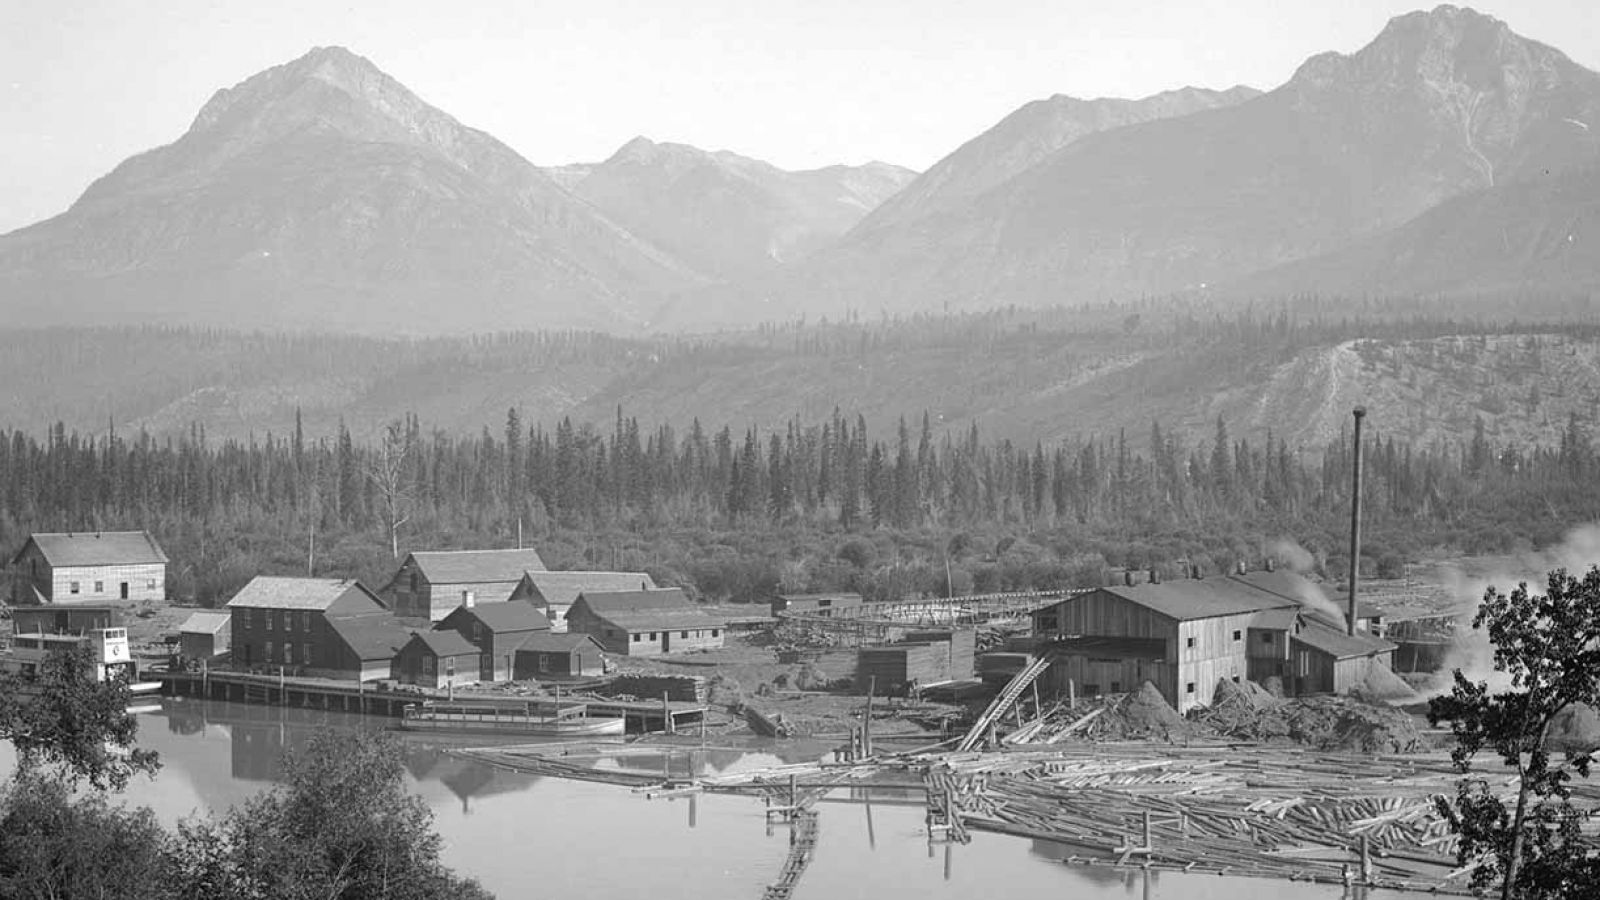 One of the many photos displayed inside the museum - Golden Lumber Company Mill in 1894.